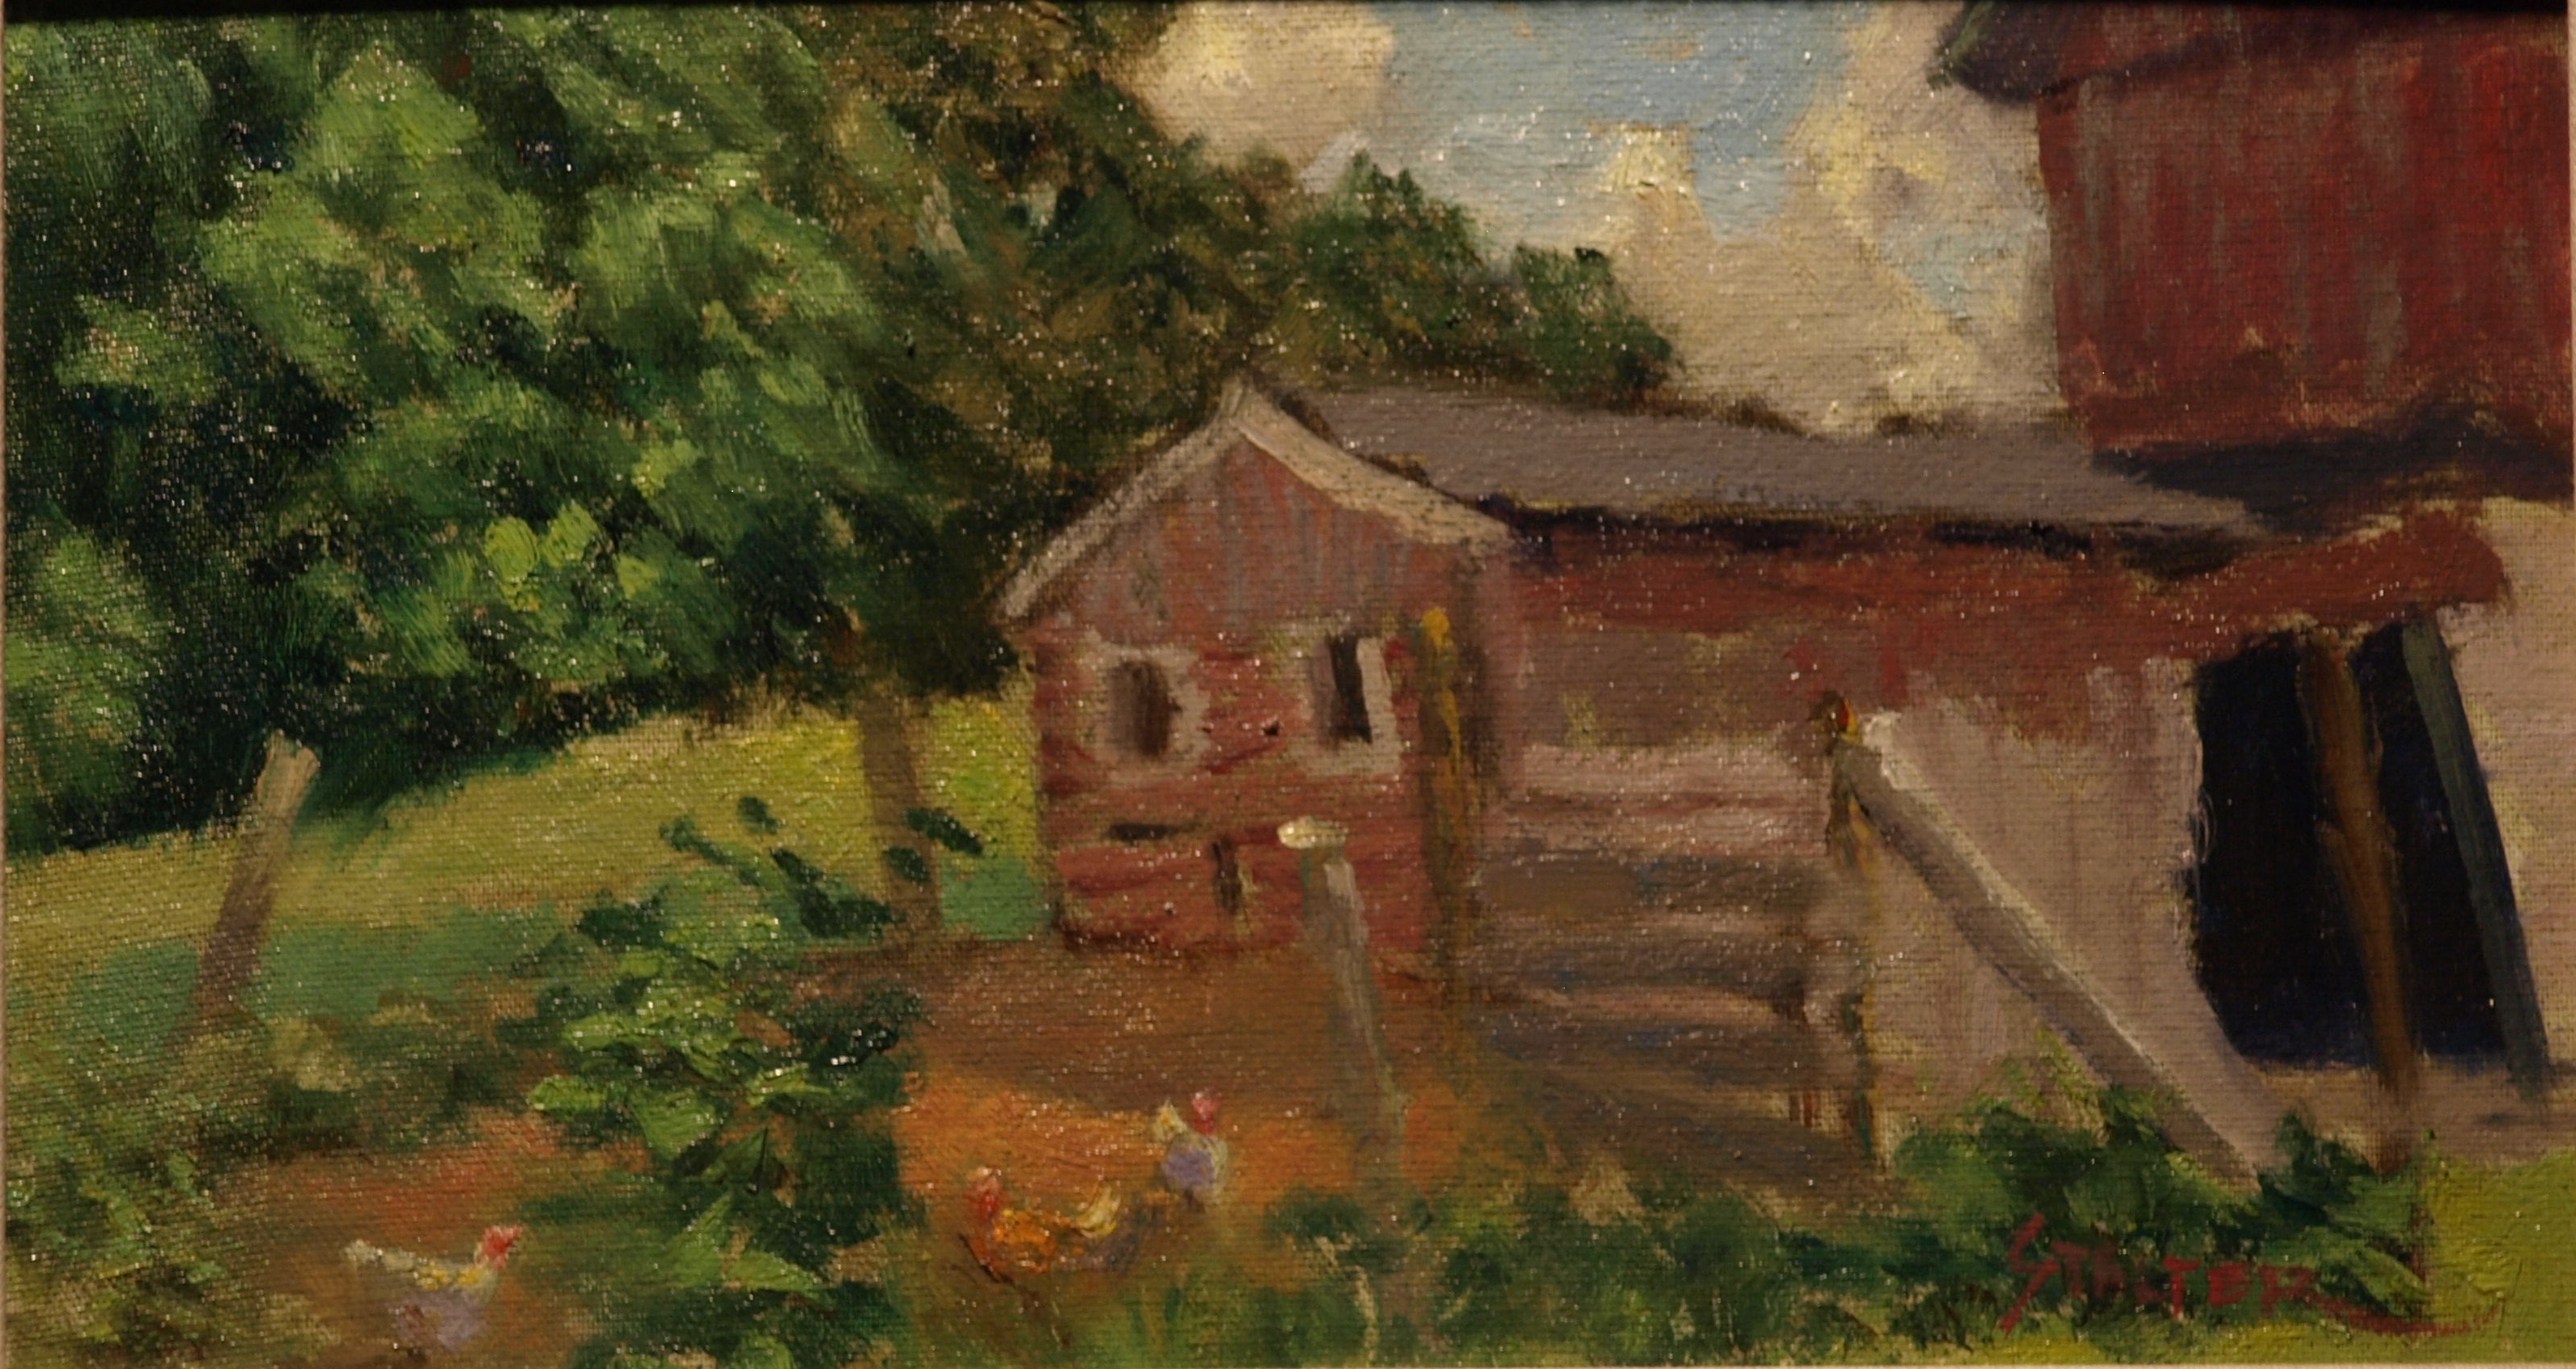 Chicken Yard, Oil on Canvas on Panel, 8 x 14 Inches, by Richard Stalter, $225